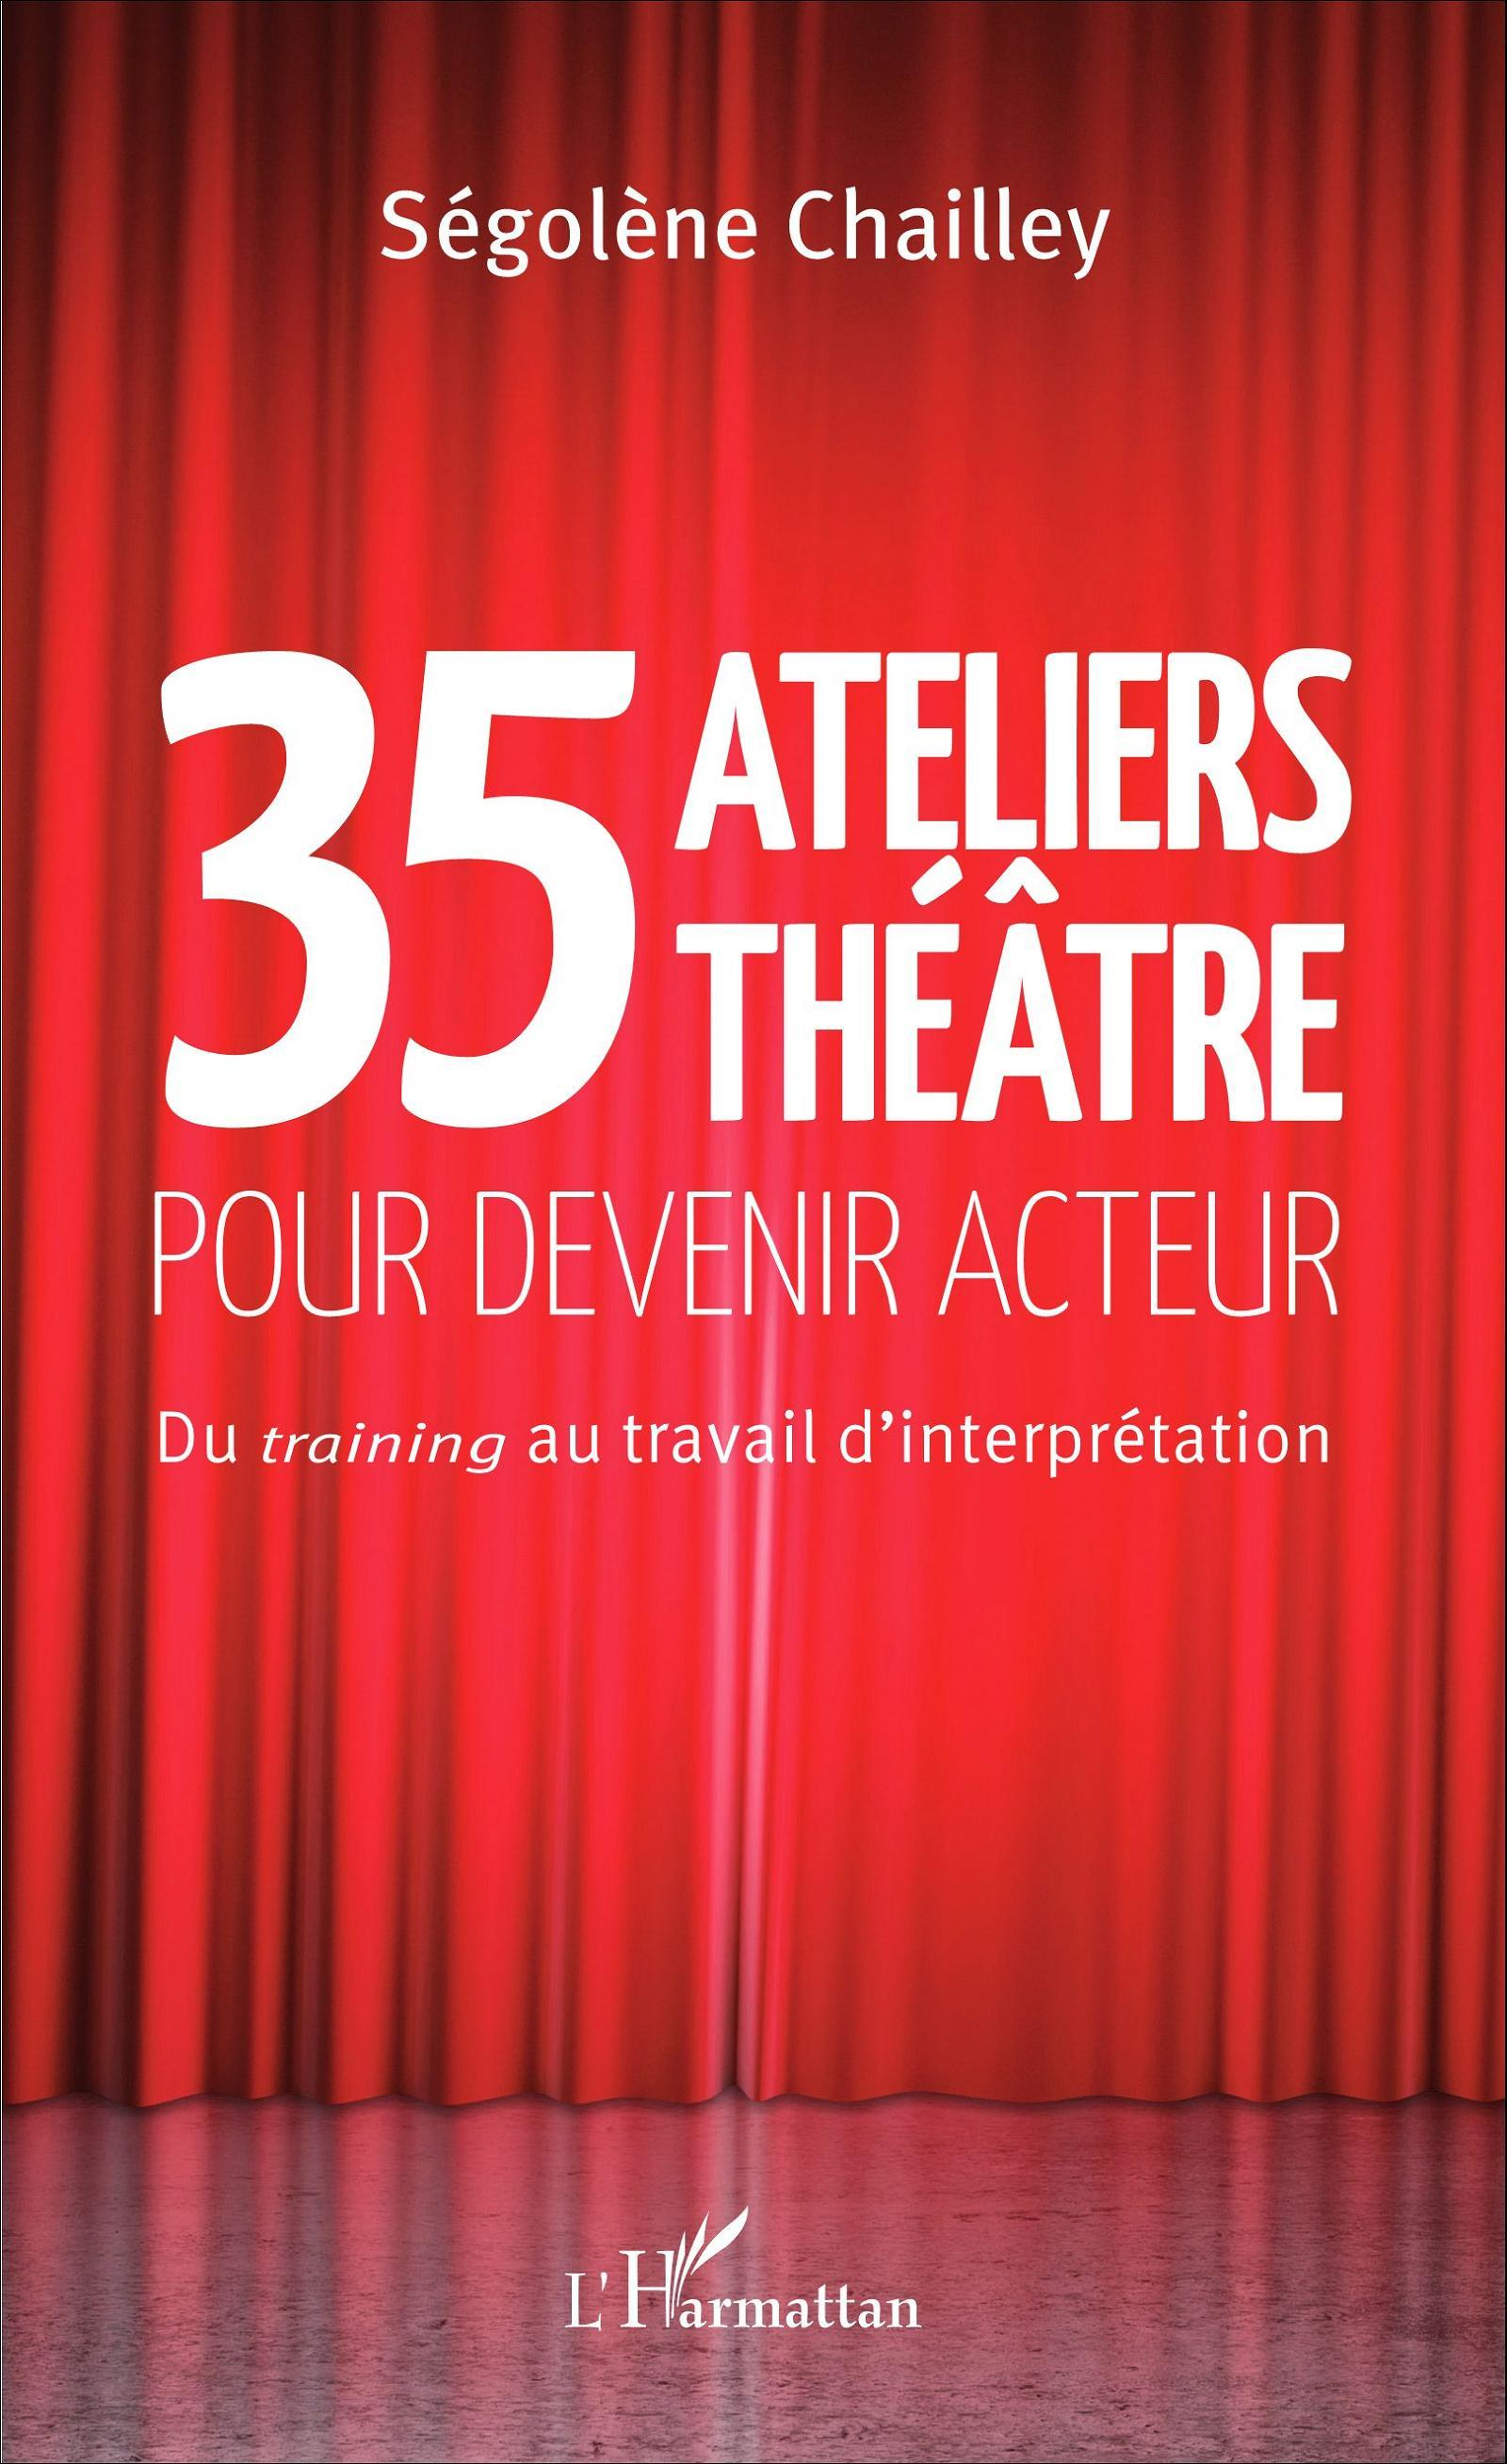 35 ATELIERS THEATRE POUR DEVENIR ACTEUR - DU <EM>TRAINING</EM> AU TRAVAIL D'INTERPRETATION